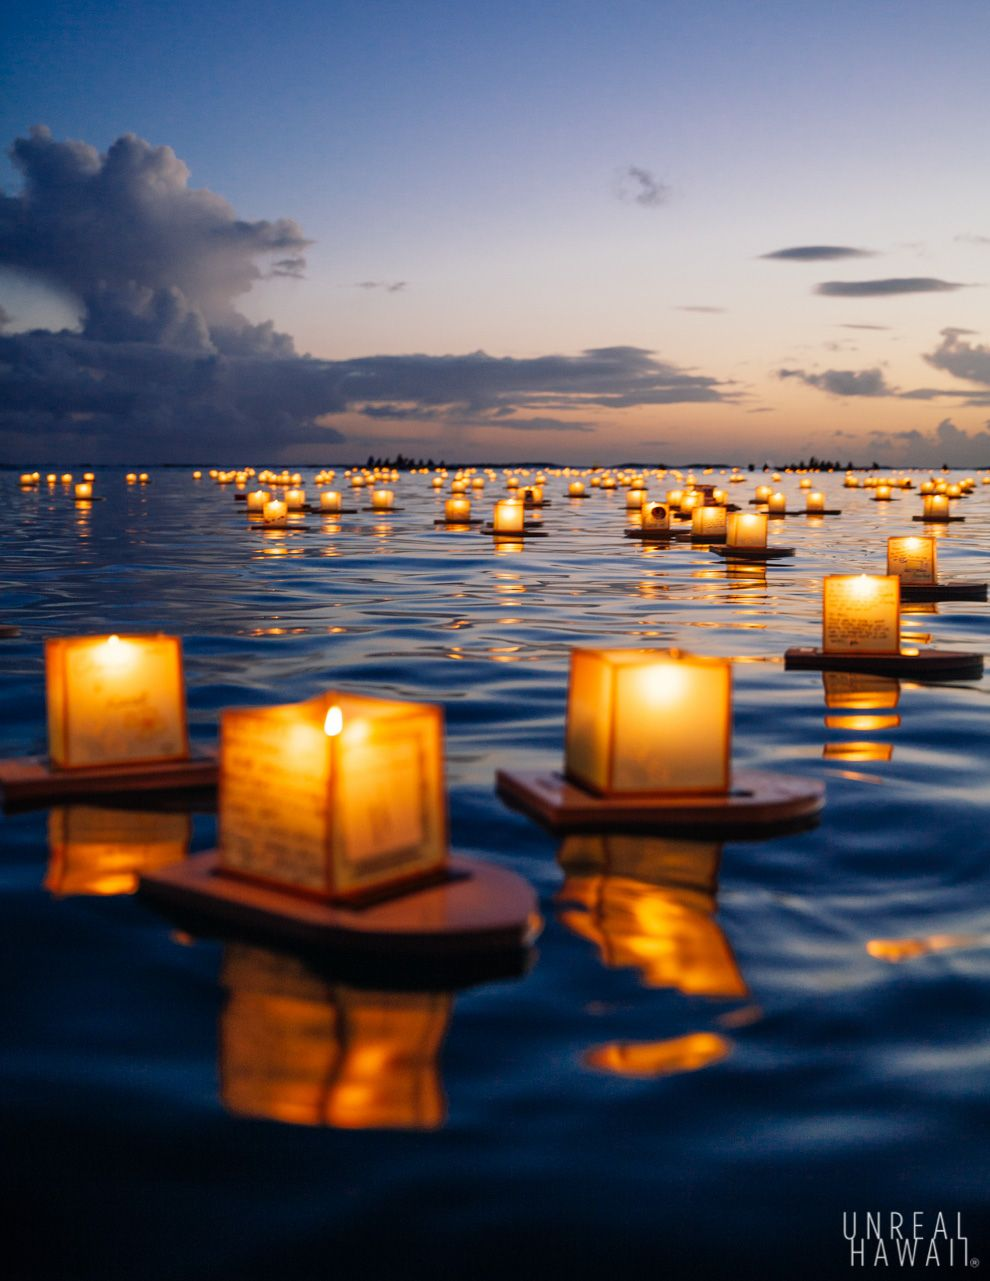 hawaiian floating lantern ceremony every memorial day in oahu to